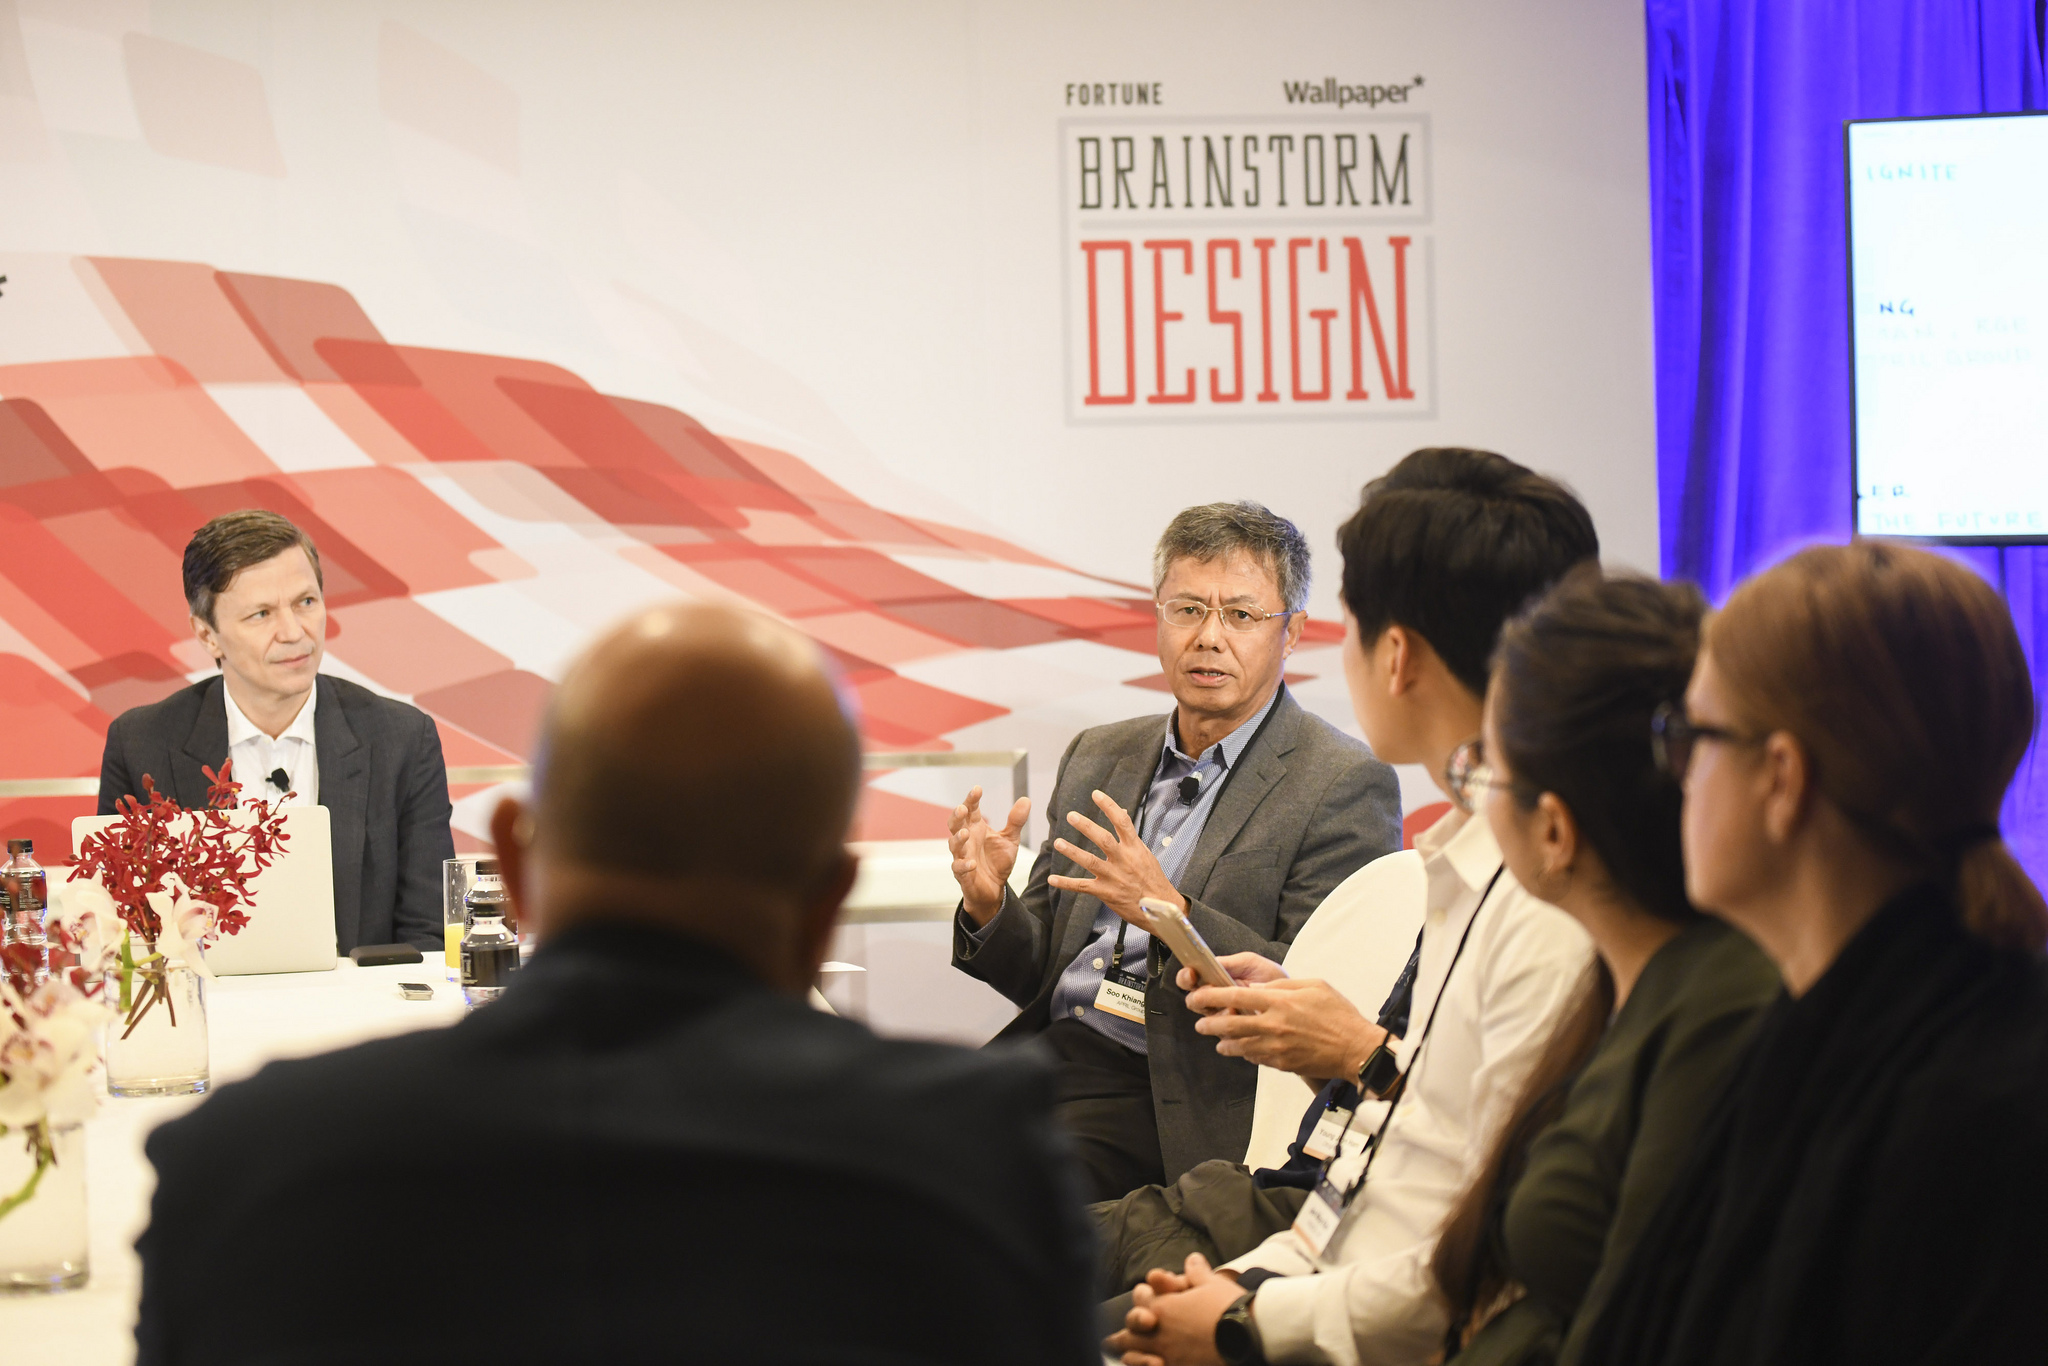 Jason Wild of Salesforce and Bey Soo Khiang of RGE and the APRIL Group speaking at the 2019 Fortune Brainstorm Design conference in Singapore.